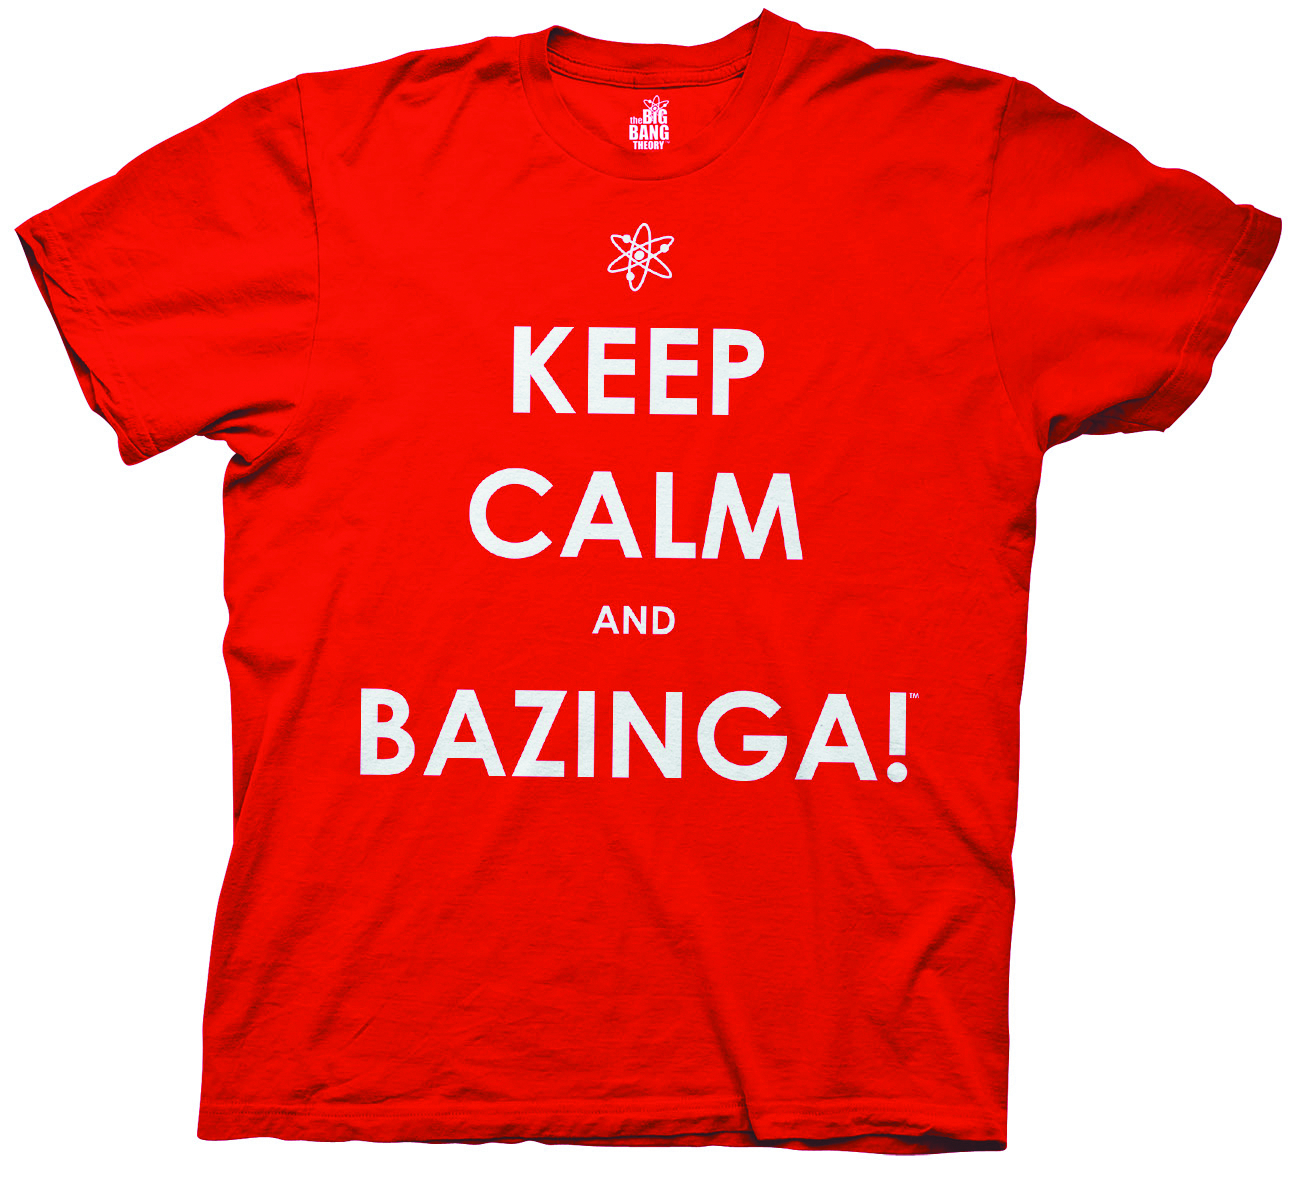 KEEP CALM BAZINGA RED T/S XL